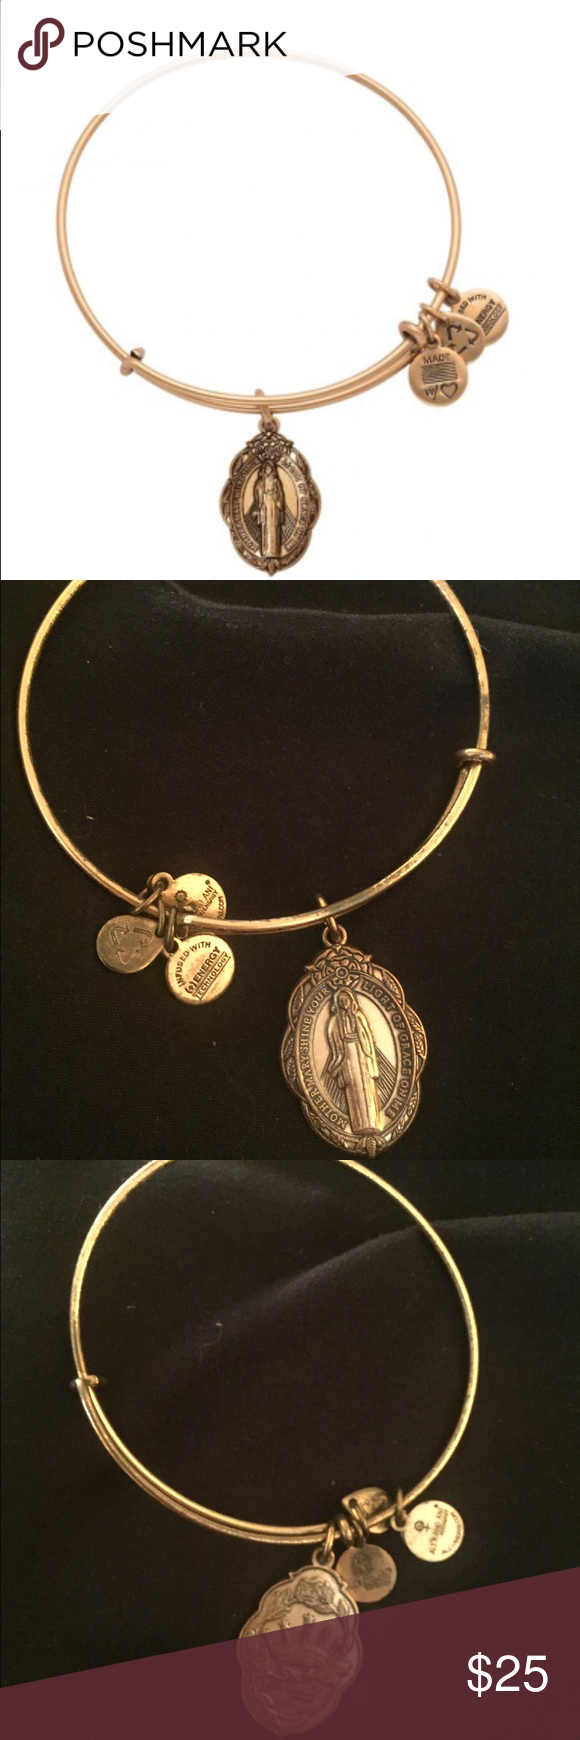 Alex and ani mother mary pinterest mother mary alex ani and